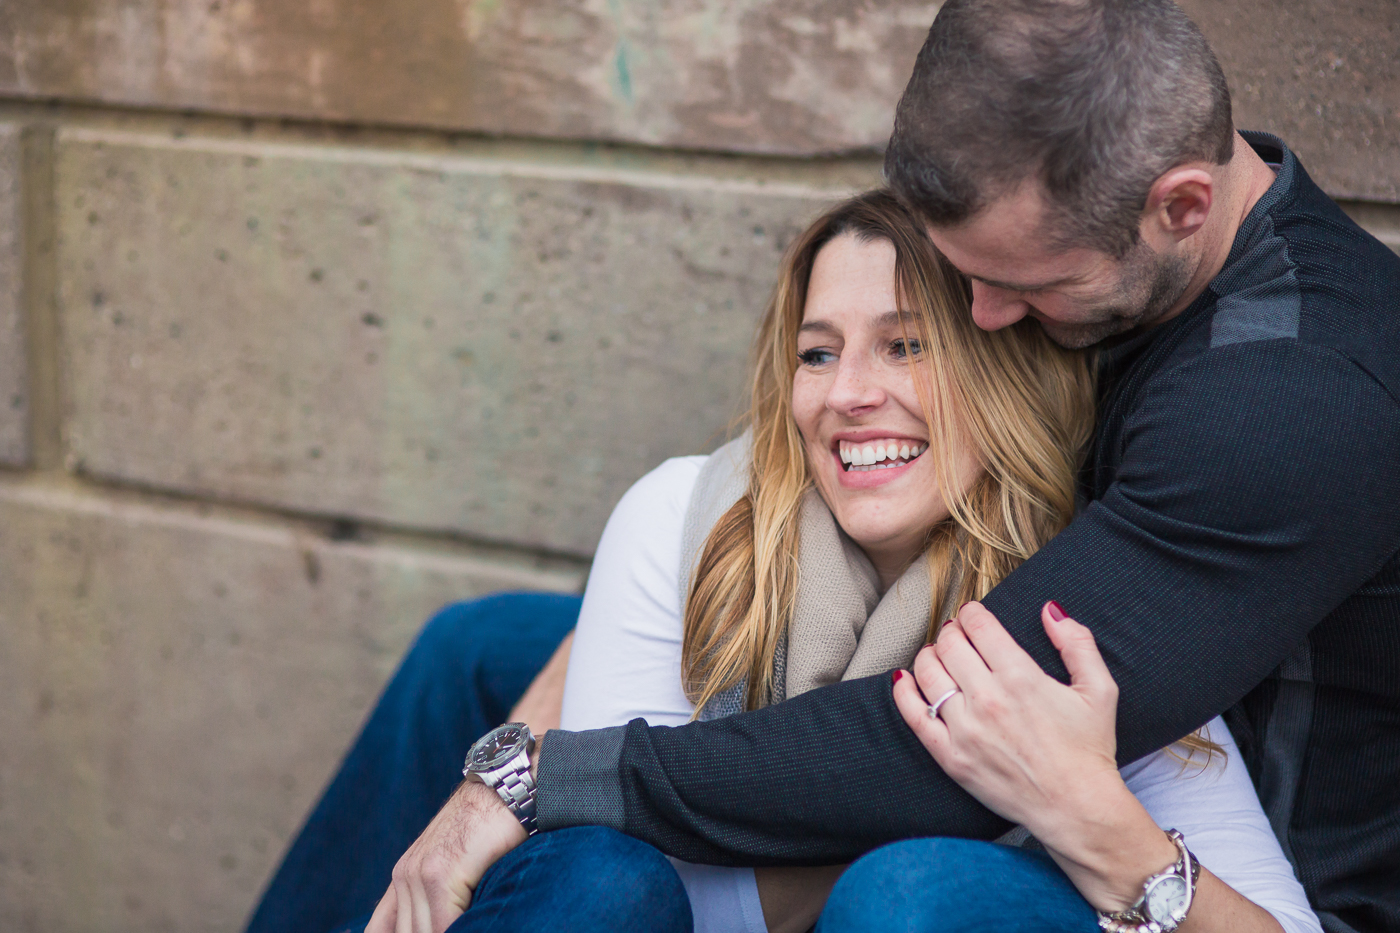 StaciDesign_Mill_City_MPLS_Engagement-6288.jpg